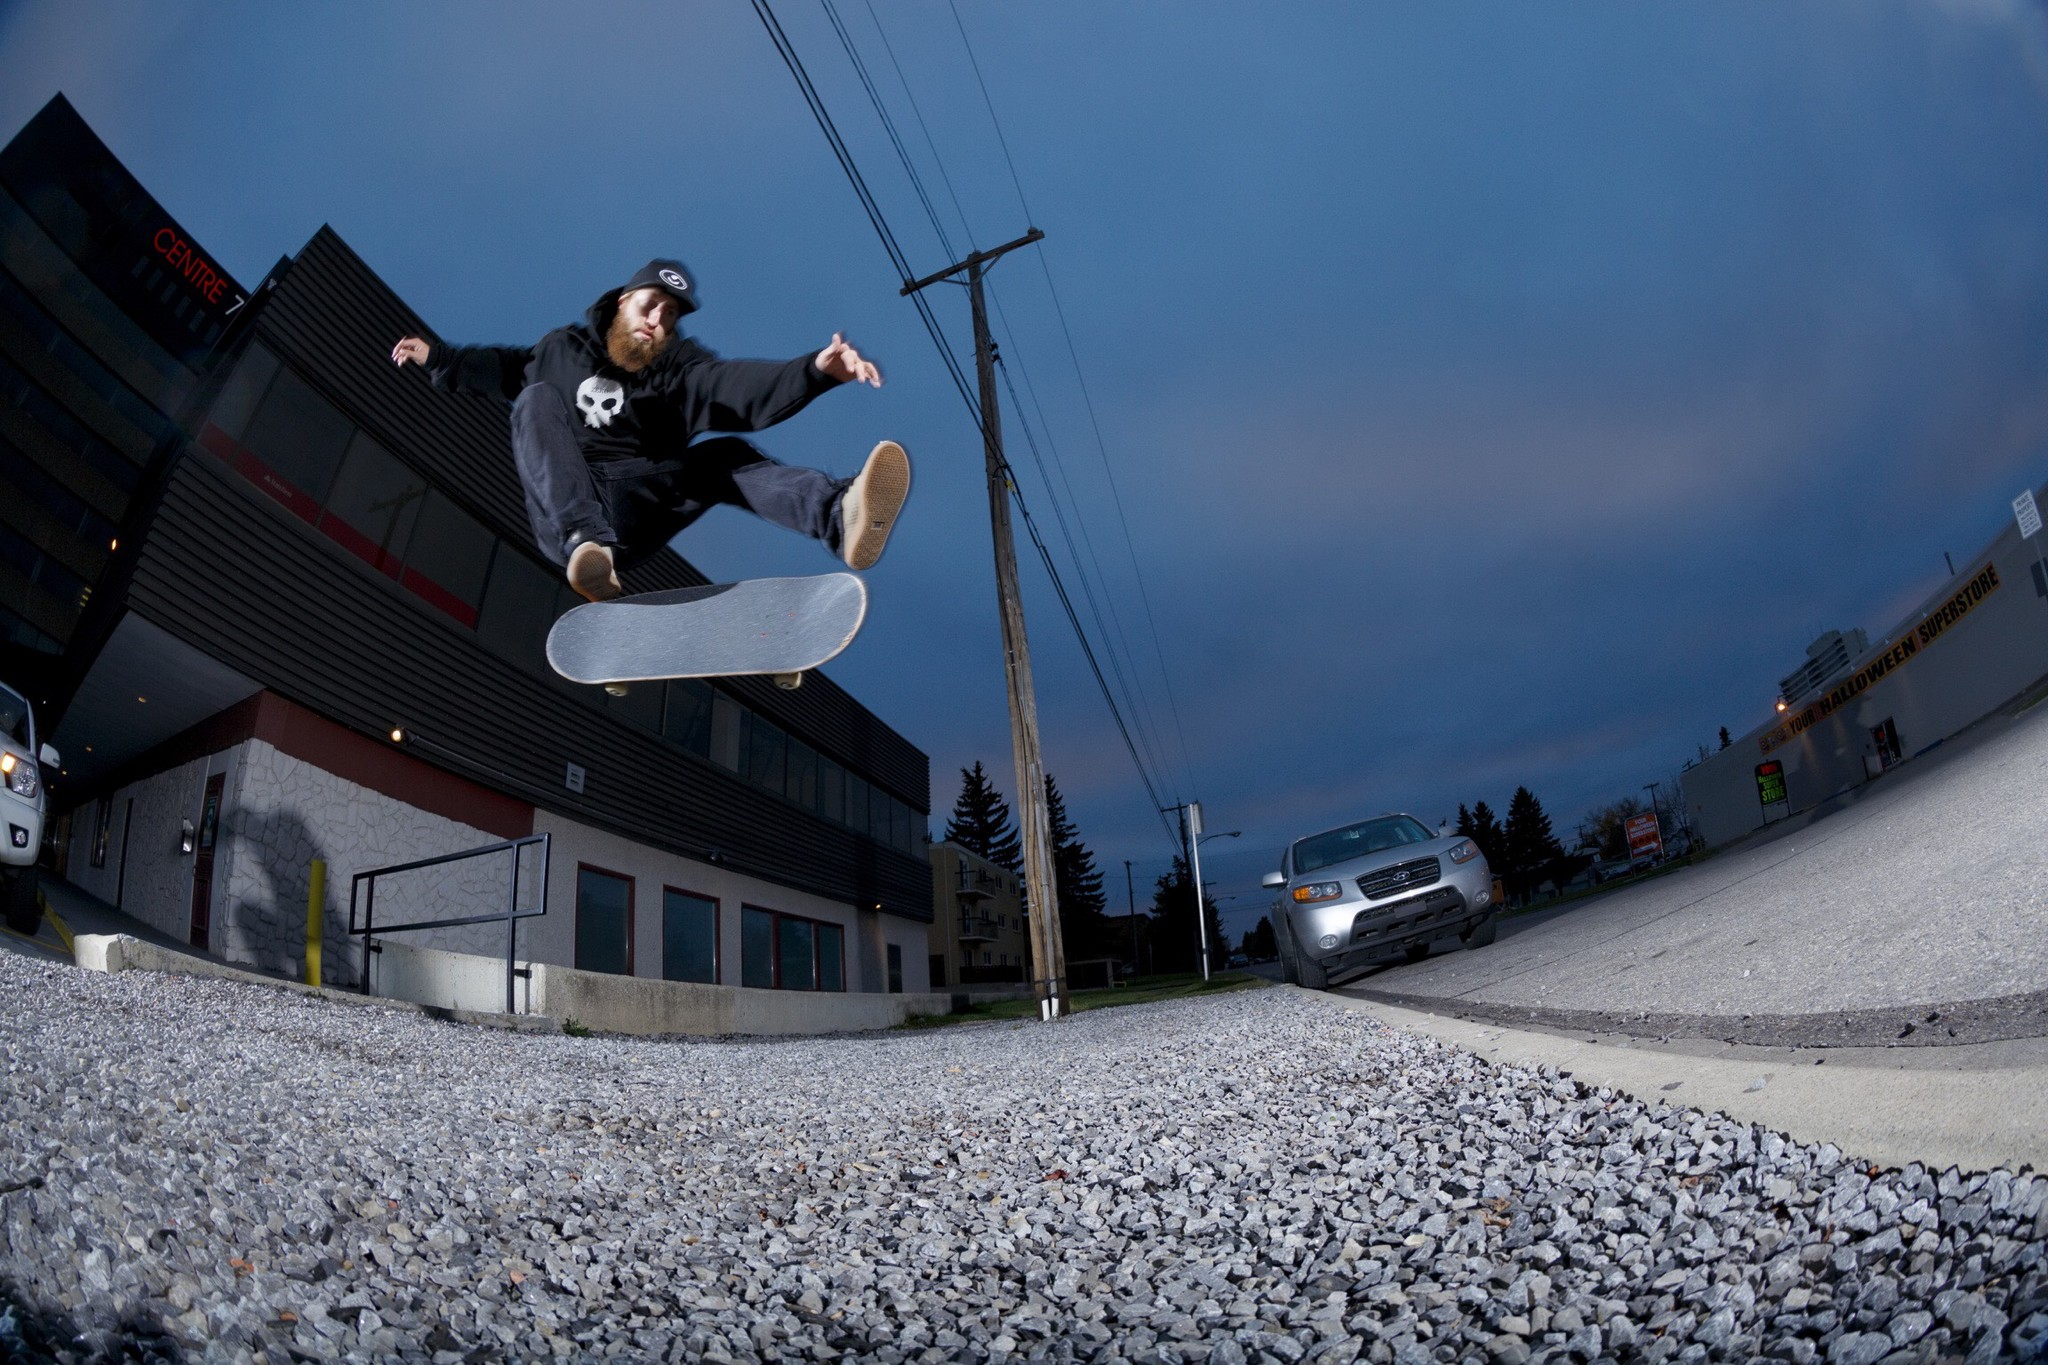 Ryan Spate Kickflip Calgary Skateboarding Liam Glass Photo